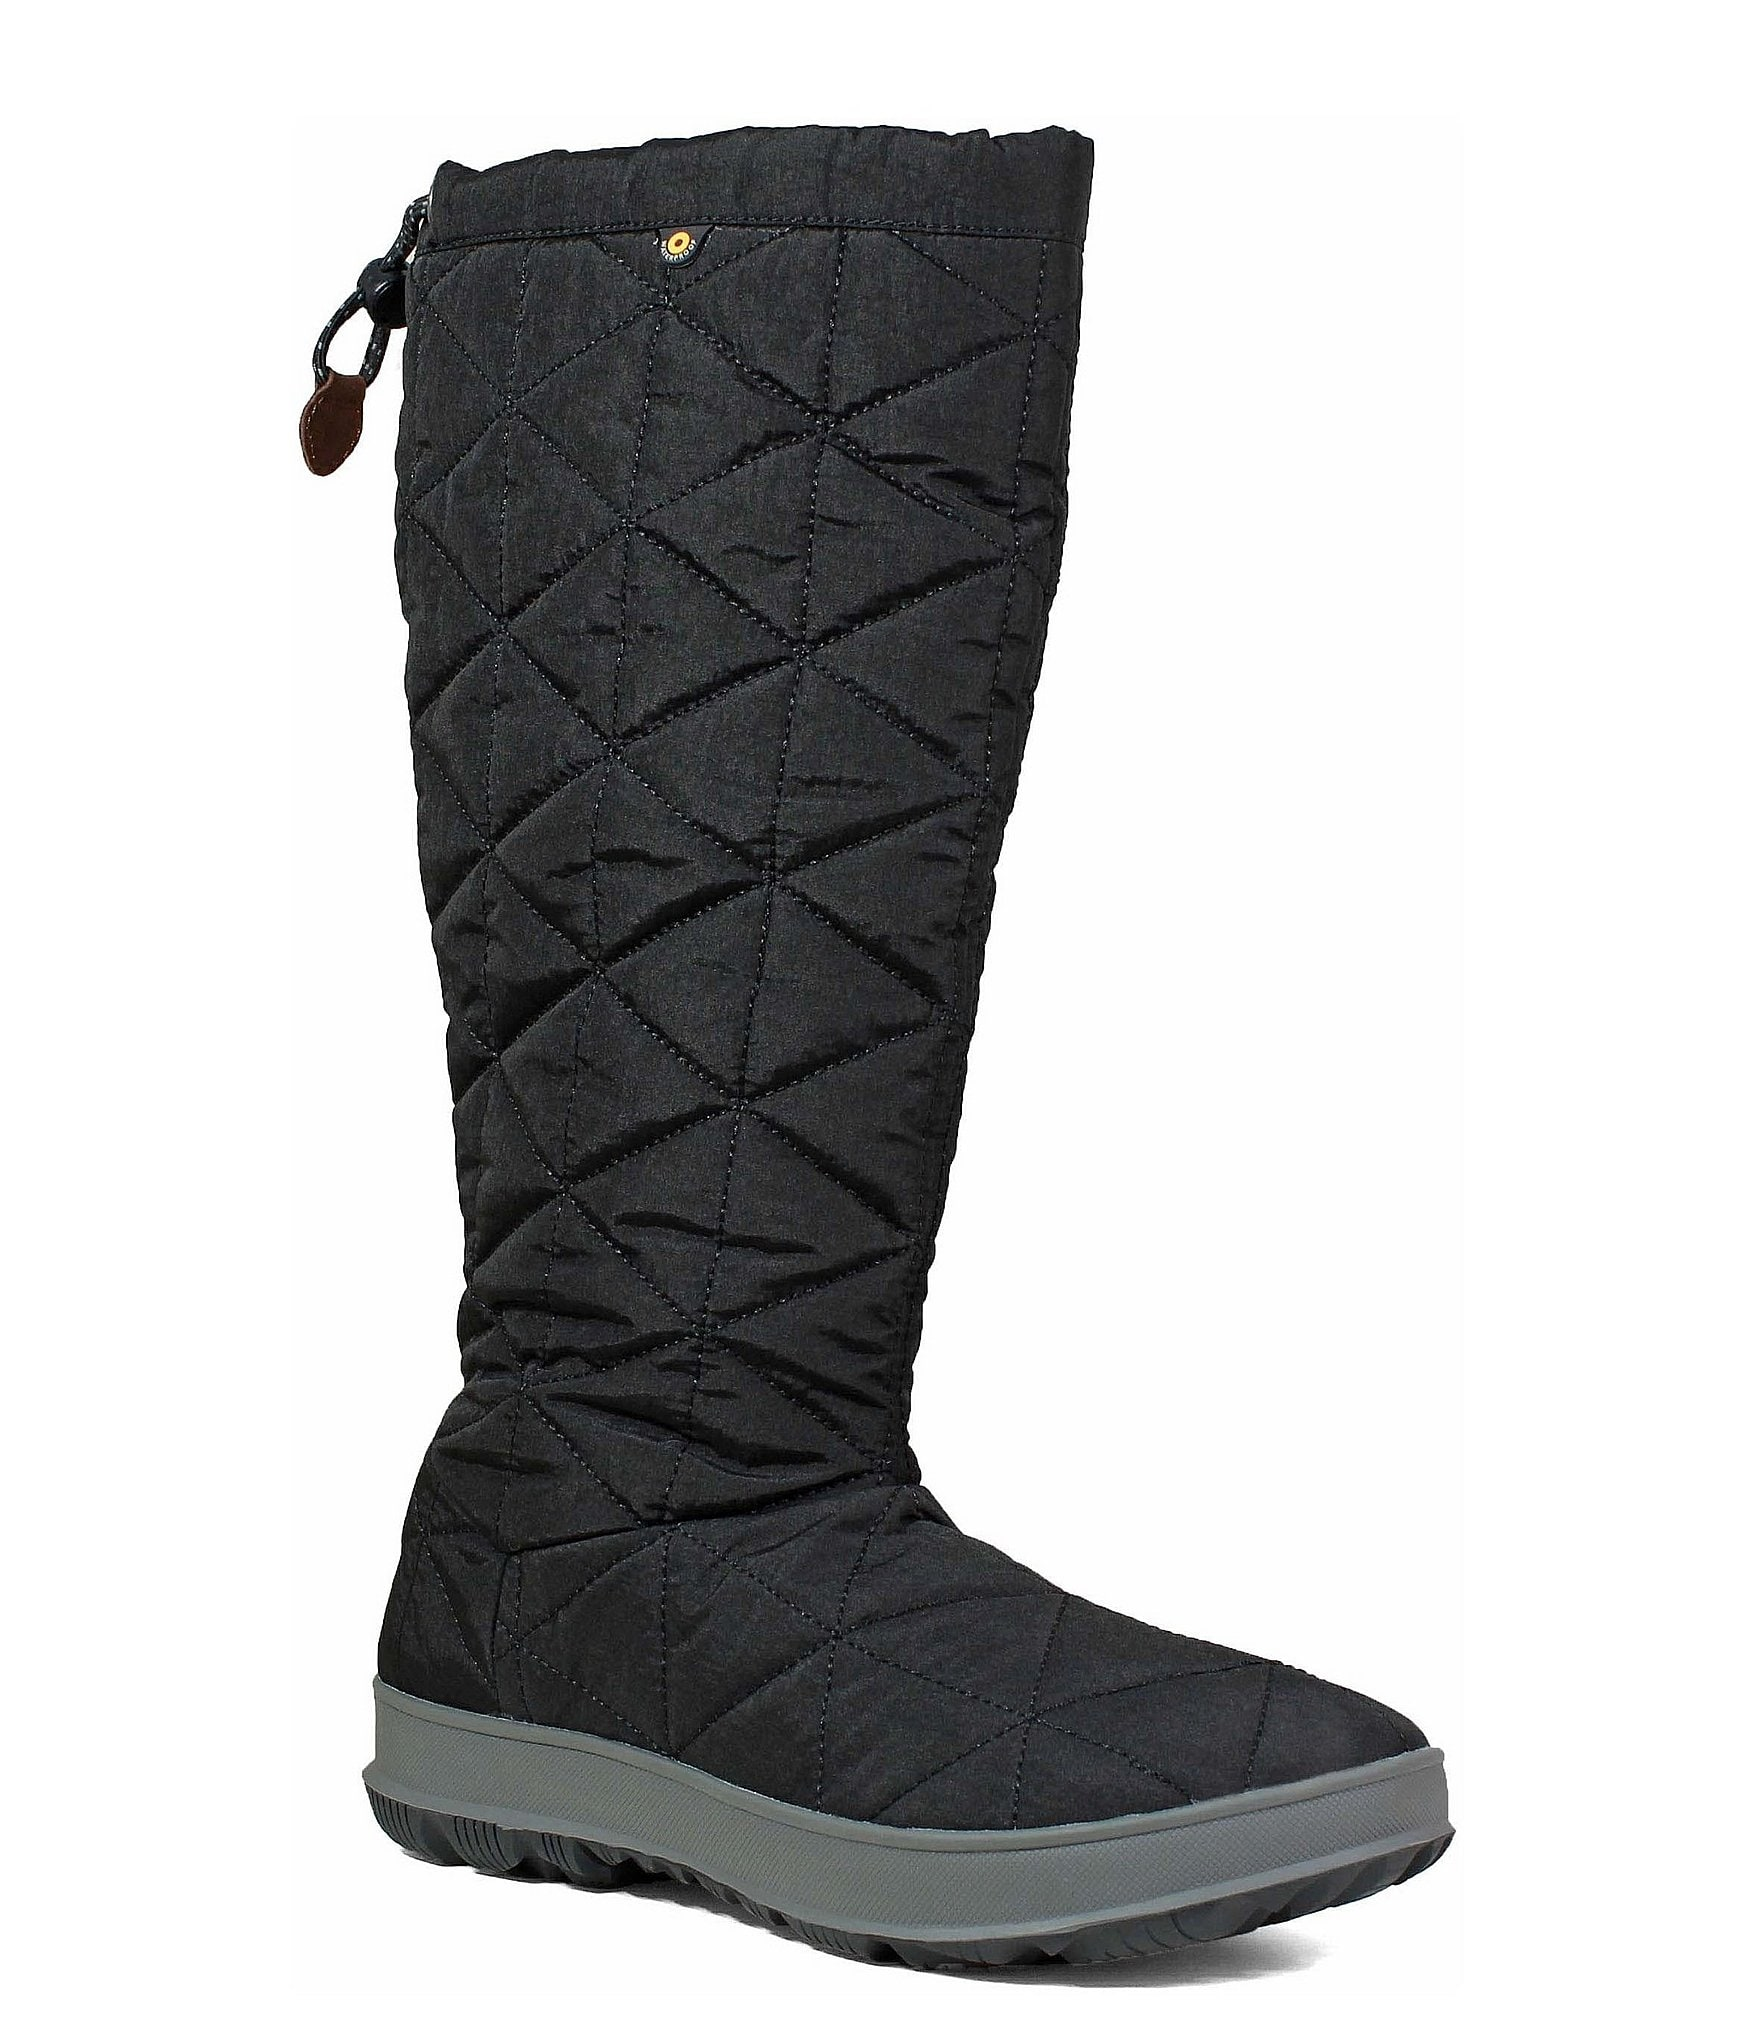 Snowday Tall Waterproof Winter Boots